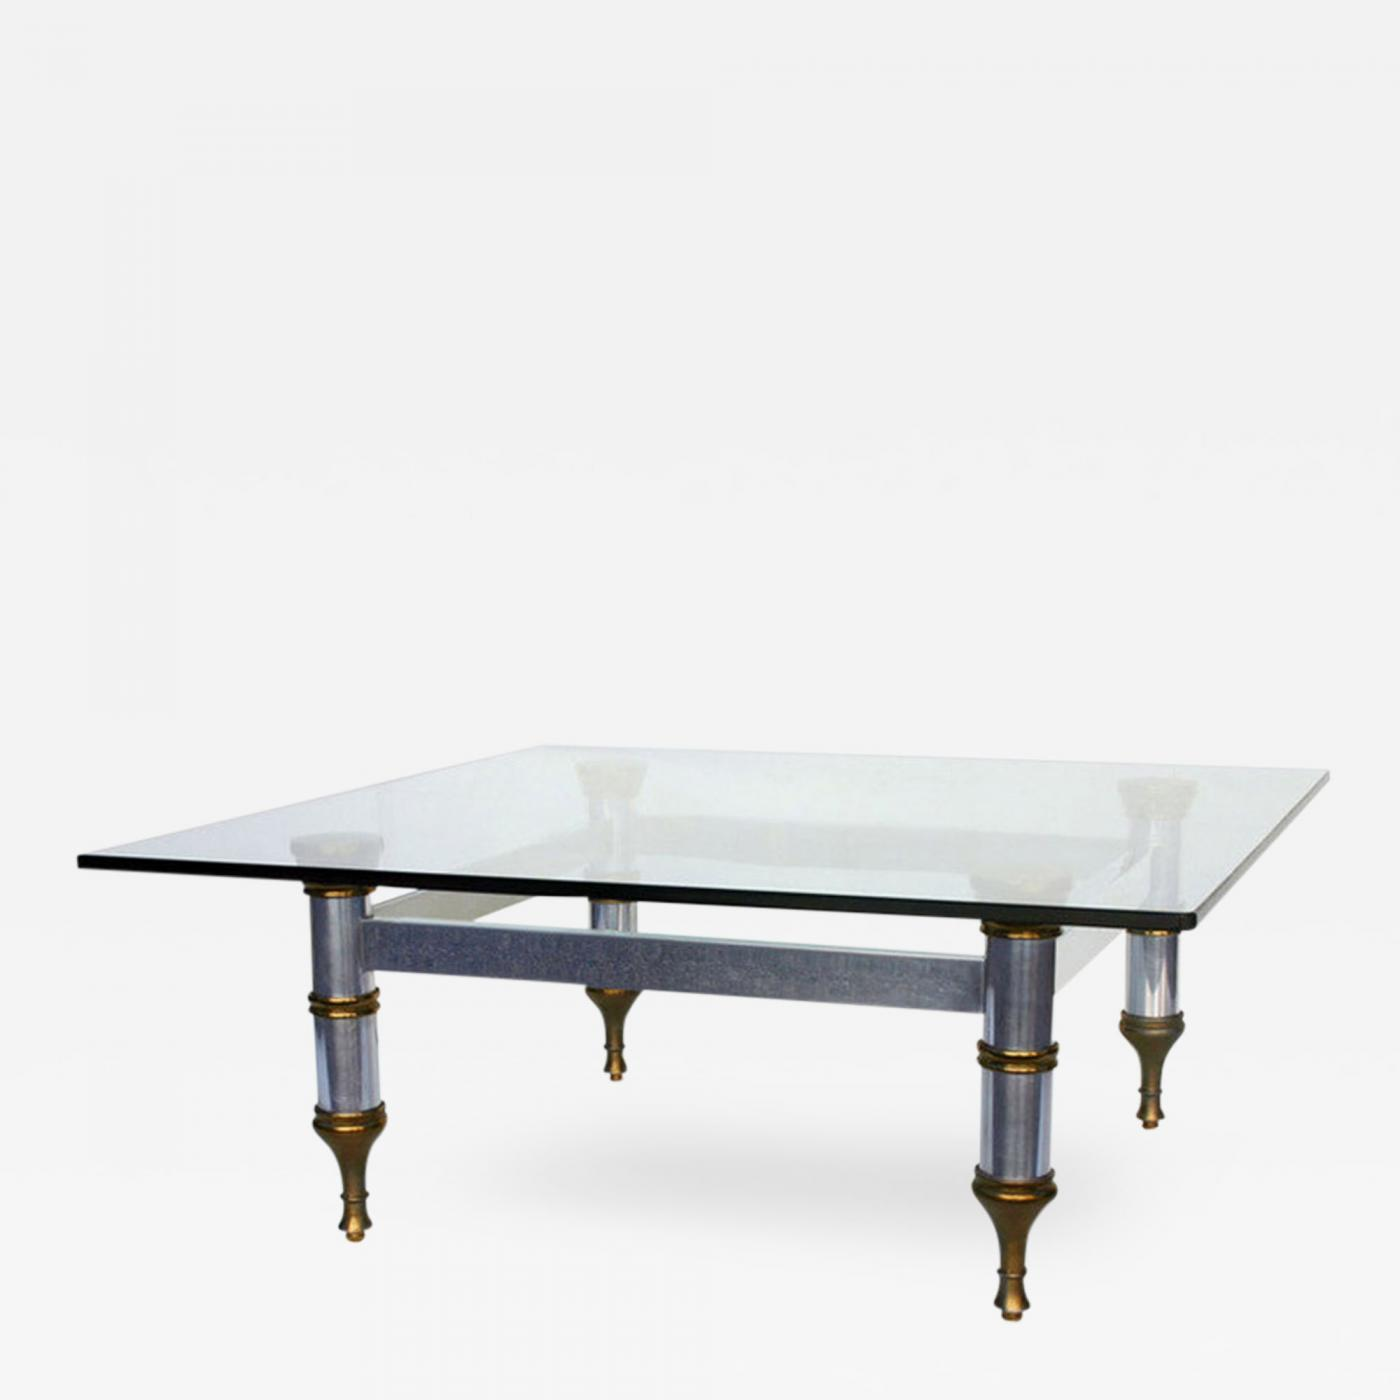 Listings Furniture Tables Center Tables Maison Jansen Maison Jansen Coffee Table